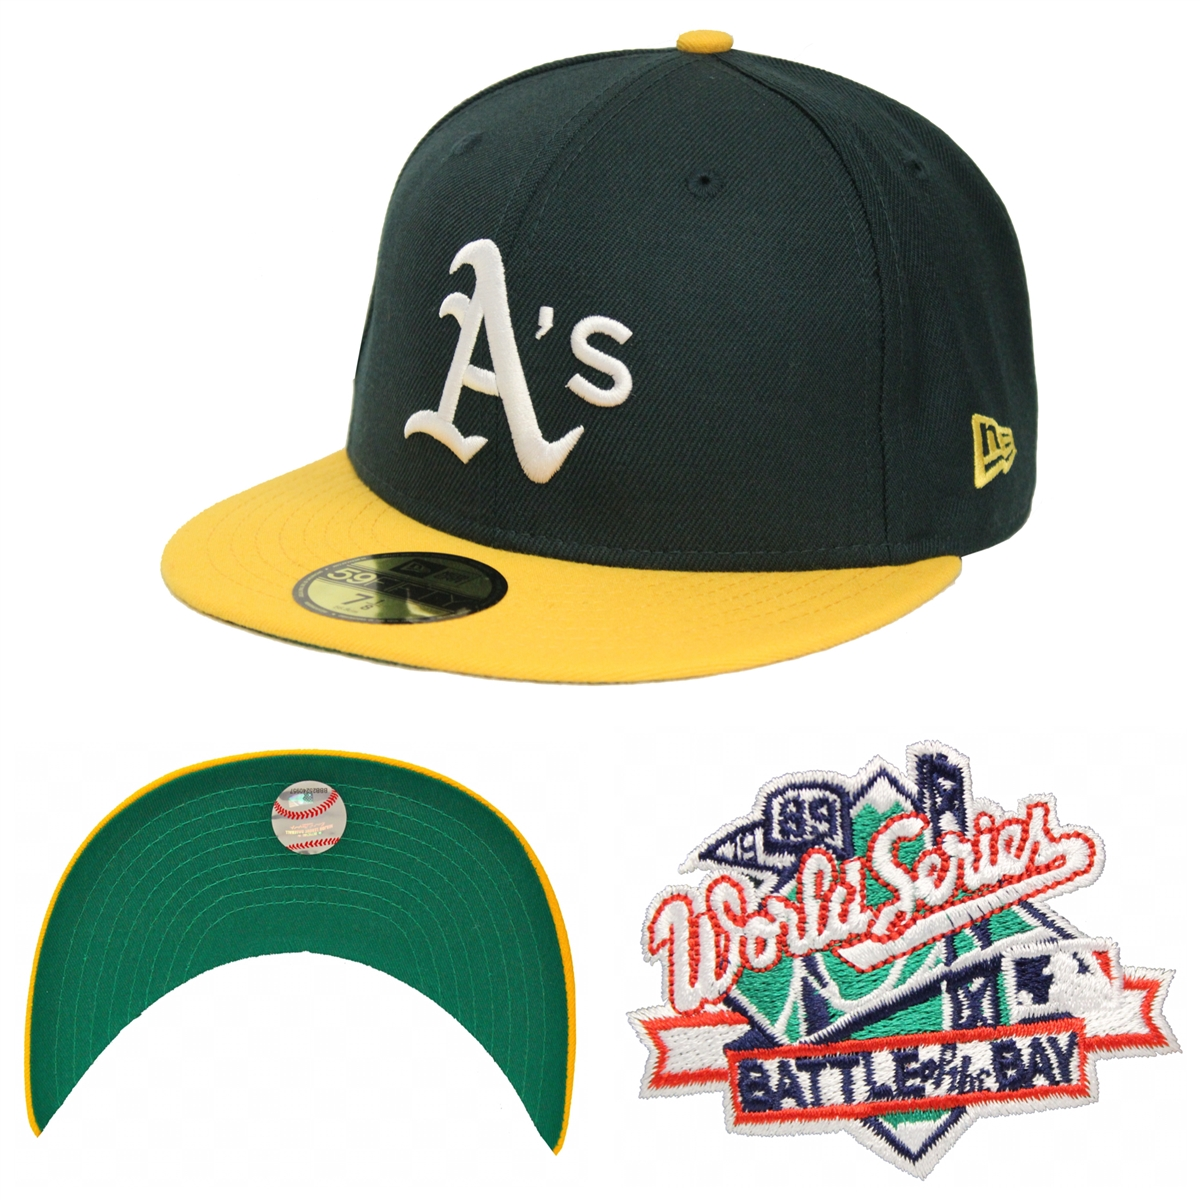 New Era 59Fifty 1989 World Series Battle Of The Bay Oakland ... b21cffbc6b3